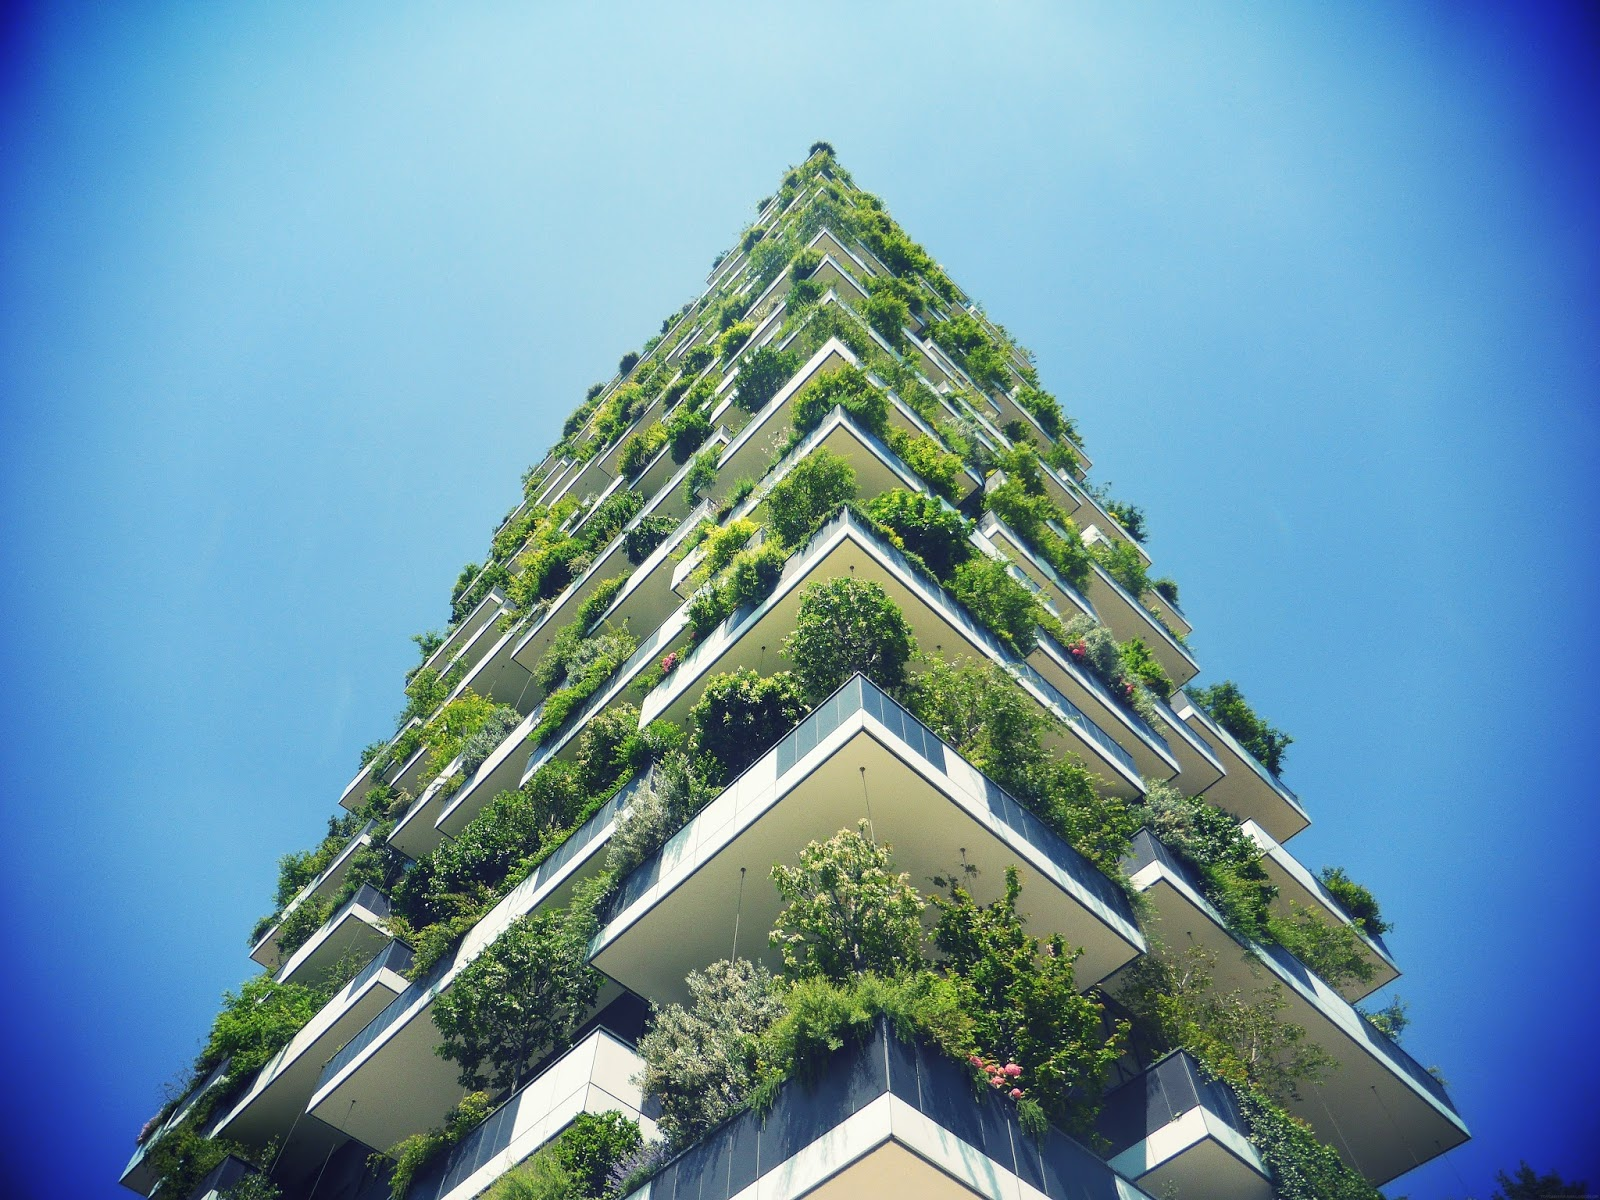 How New Sustainable Technologies Could Create a Green Future